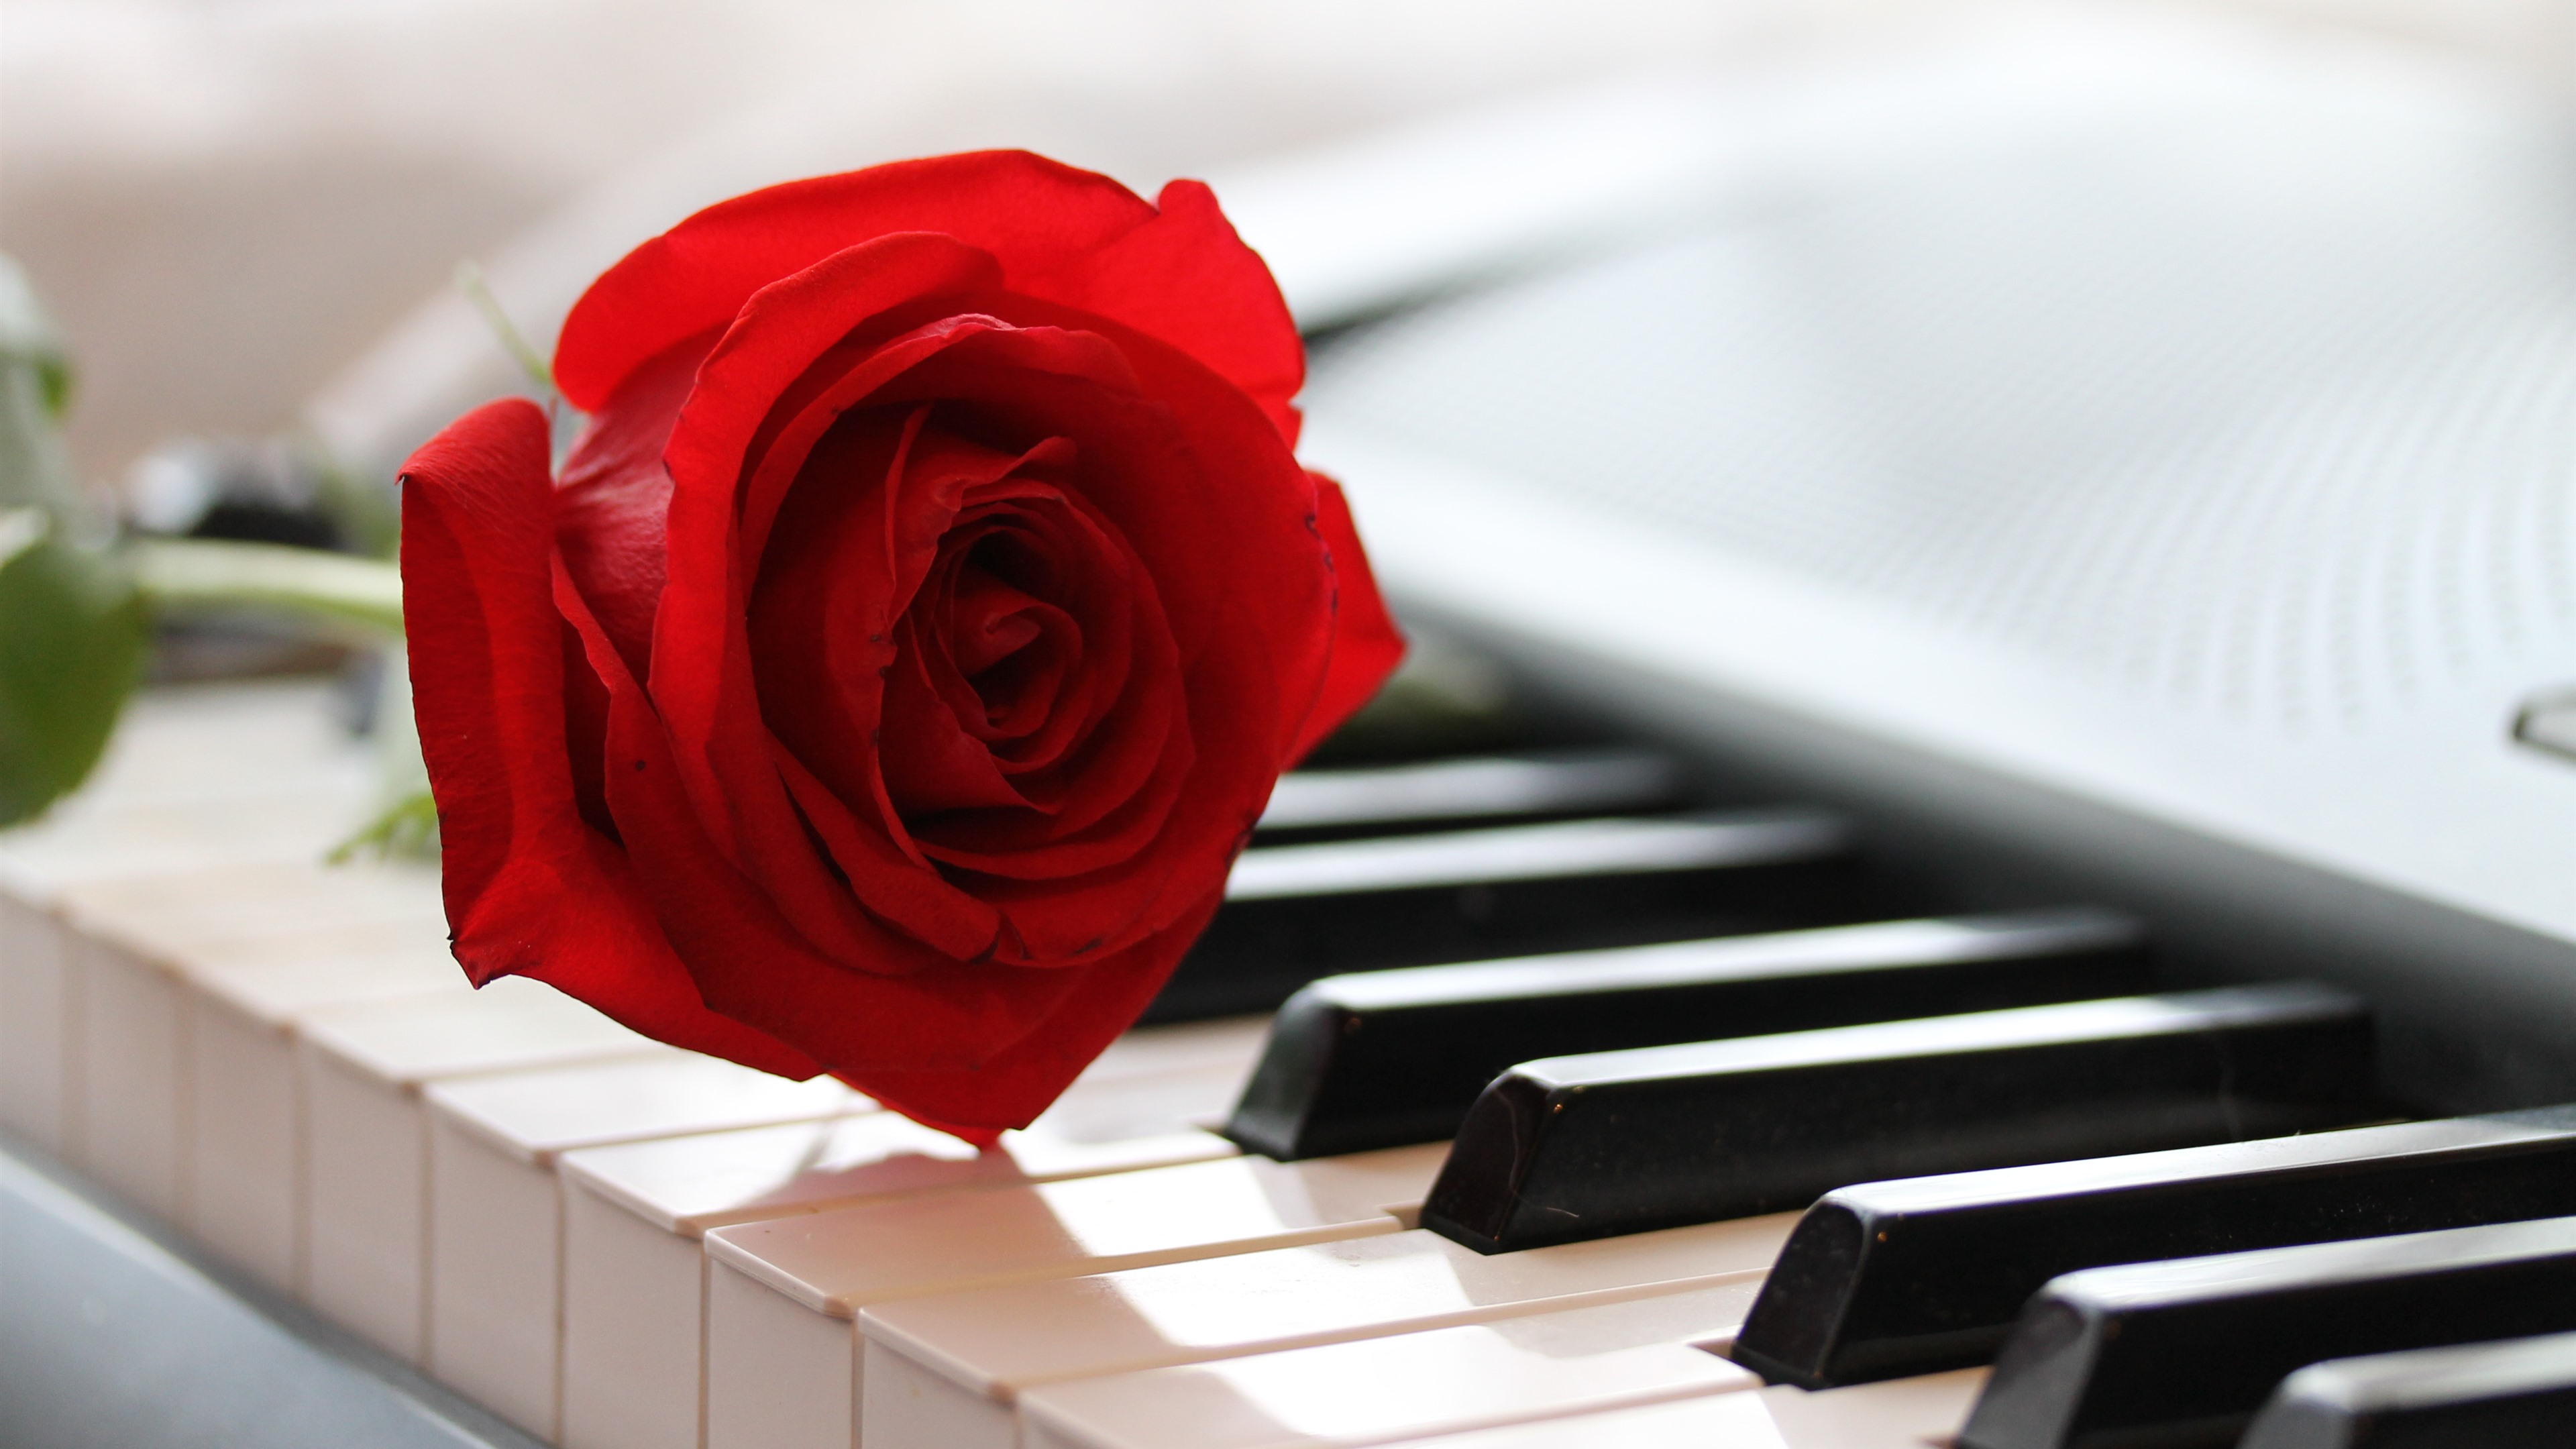 Wallpaper One Red Rose And Piano 3840x2160 Uhd 4k Picture Image